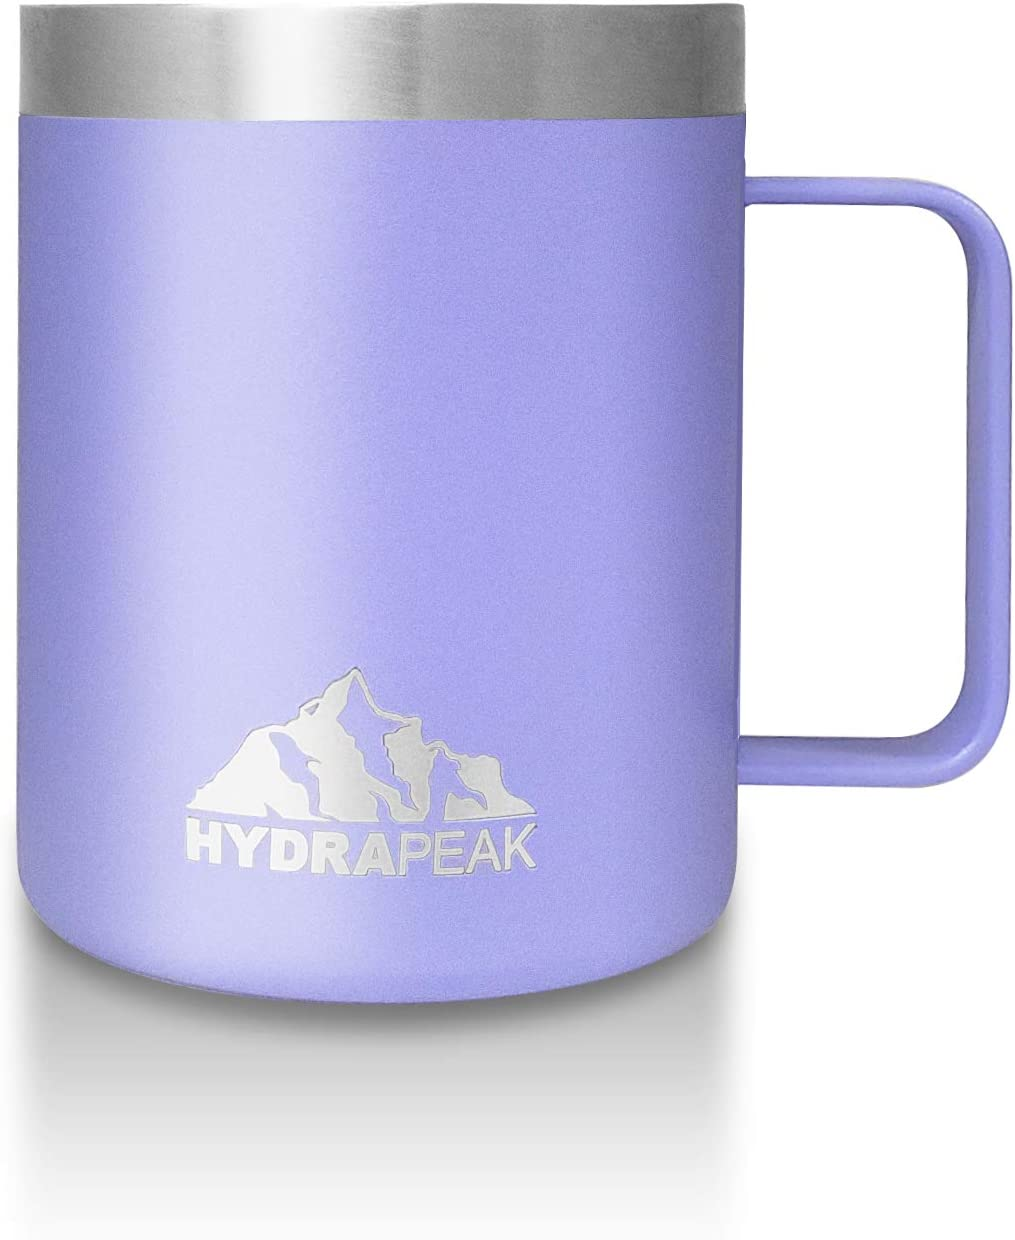 12oz, Aqua Hydrapeak 12 oz Stainless Steel Double Vacuum-Insulated Coffee Mug Reusable Travel Cup with Integrated Handle and Press in Lid